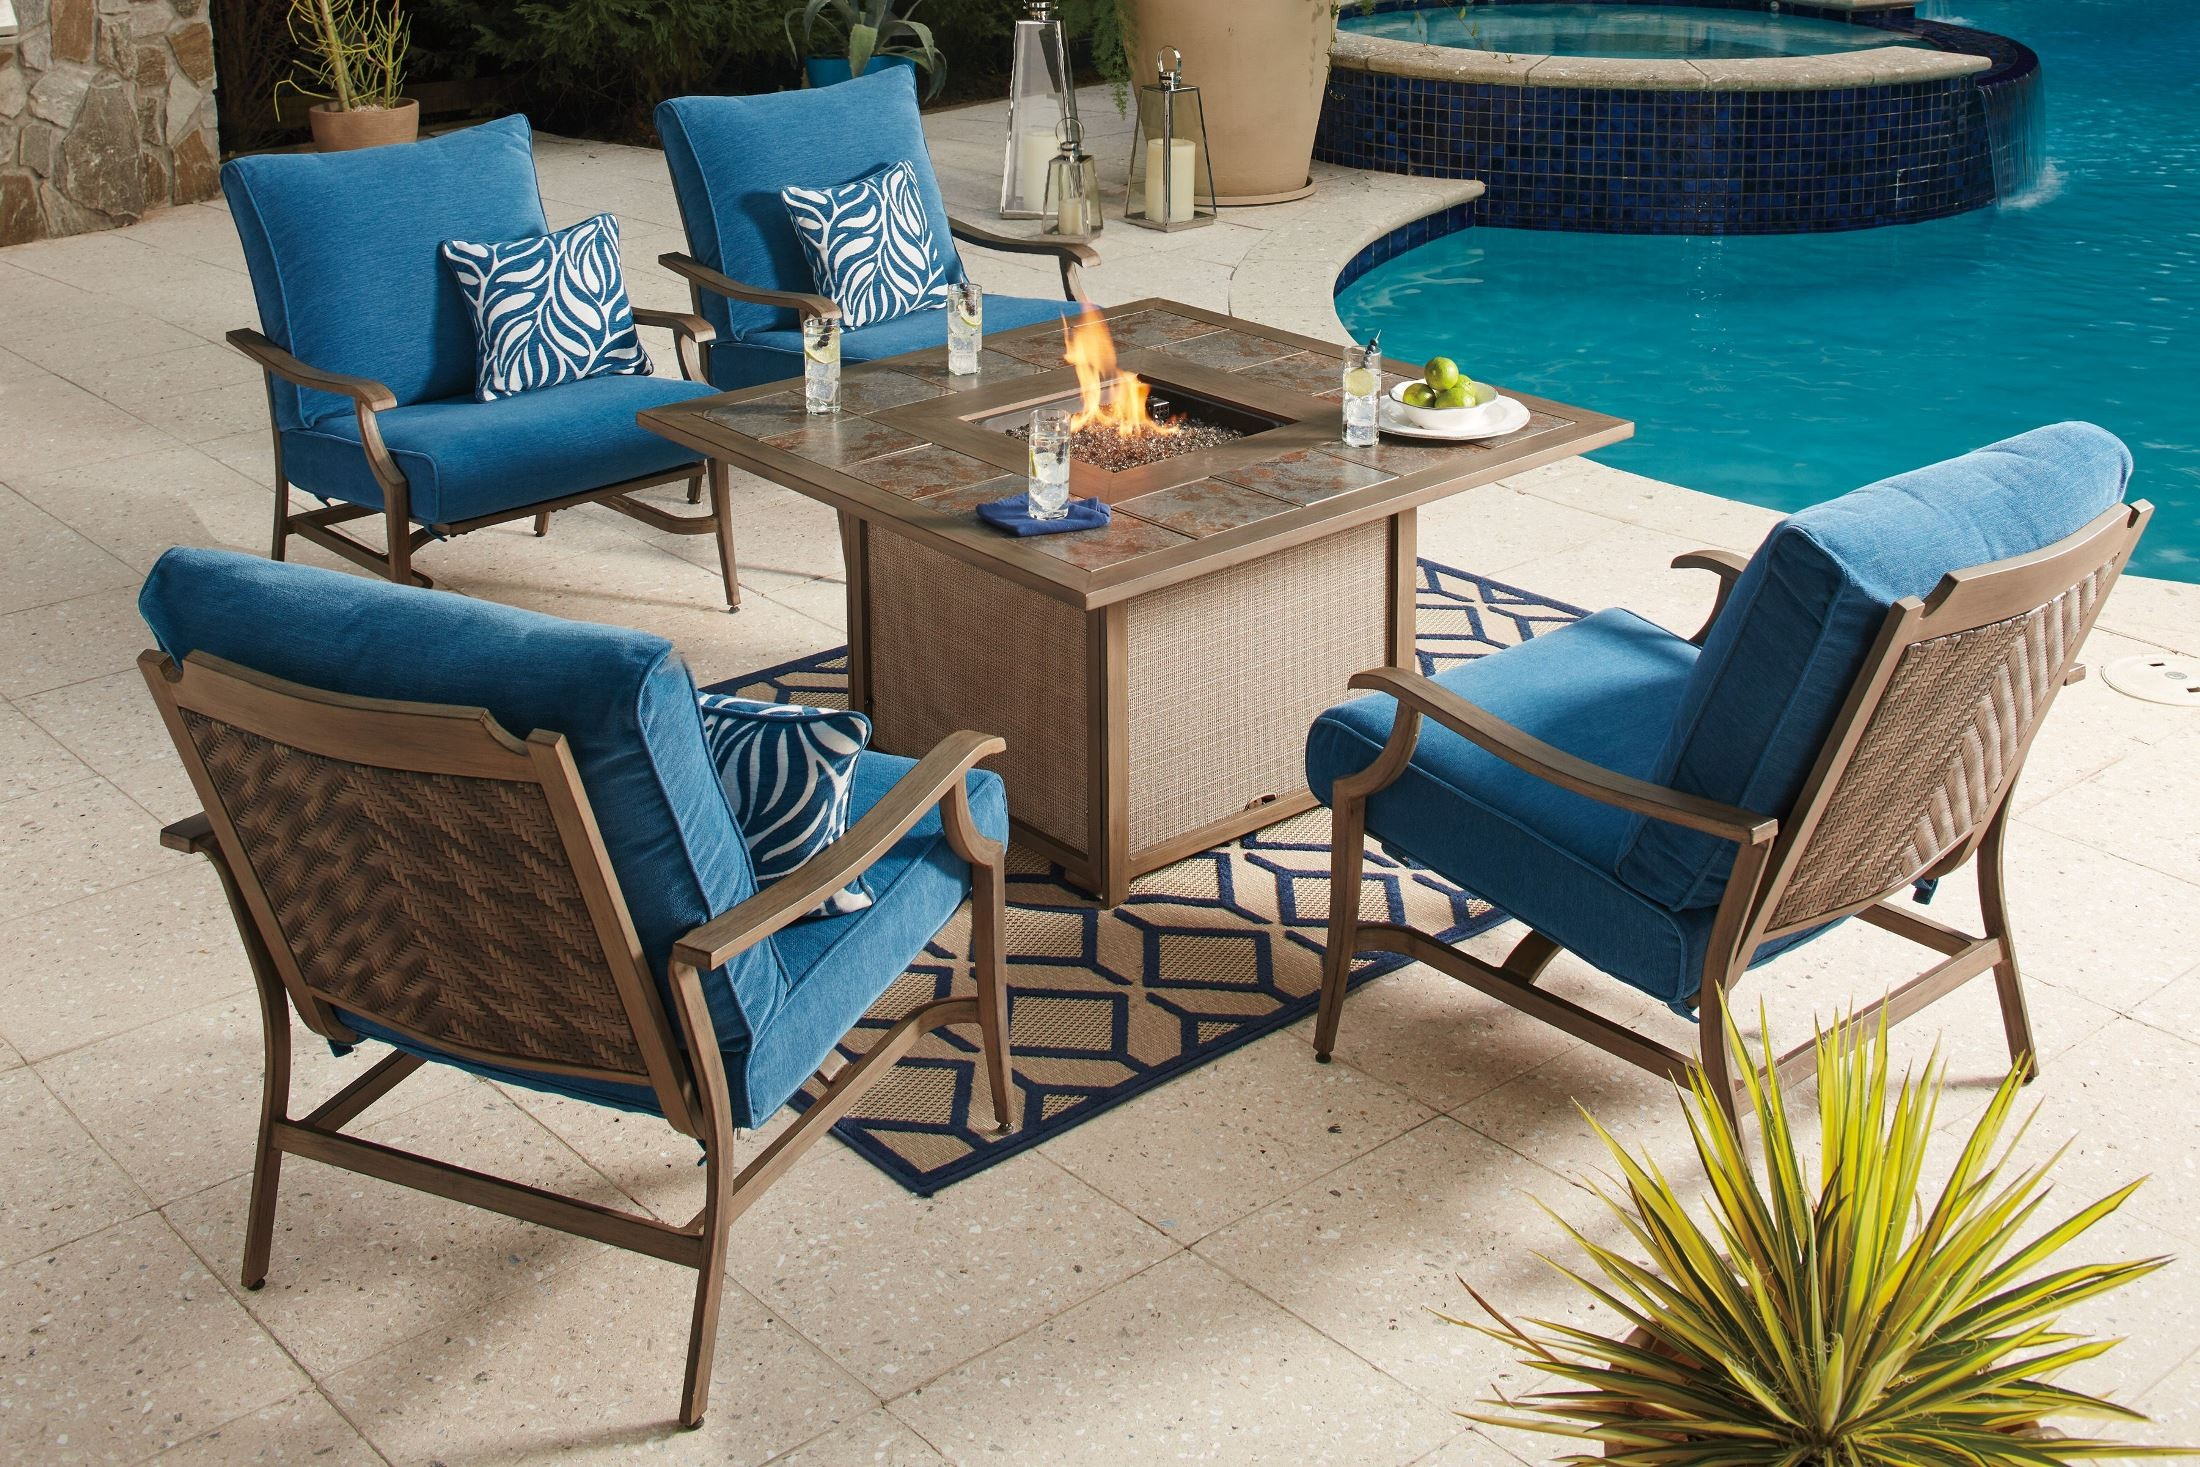 Partanna Blue And Beige Square Fire Pit Outdoor Dining Set